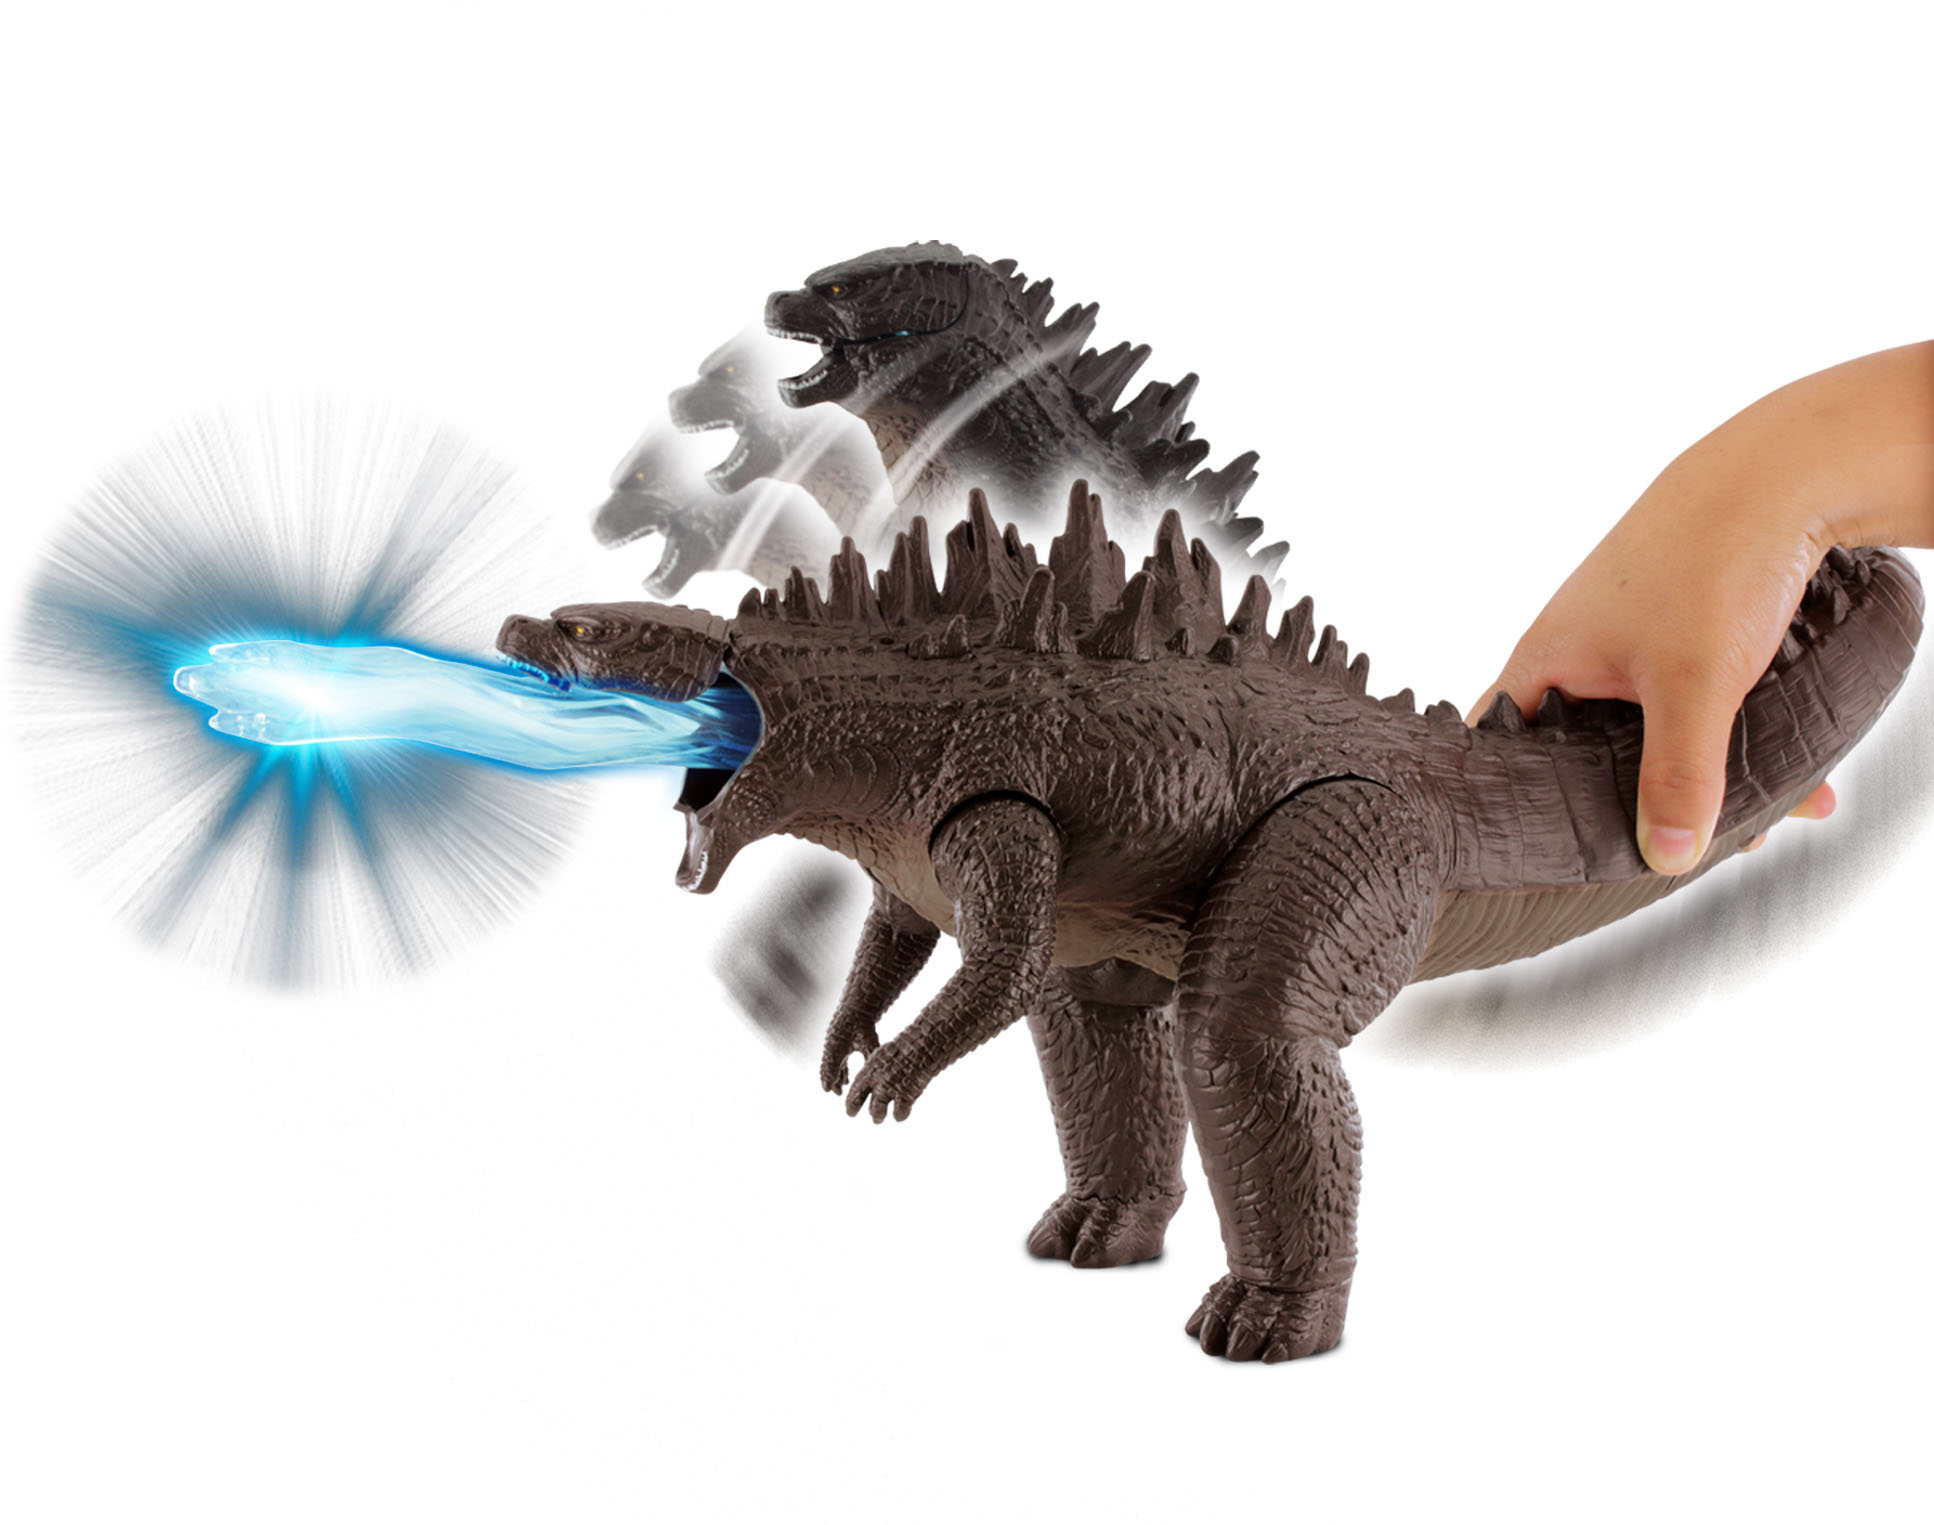 Bandai Reveals Godzilla 2014 Toy Line Up - The Toyark